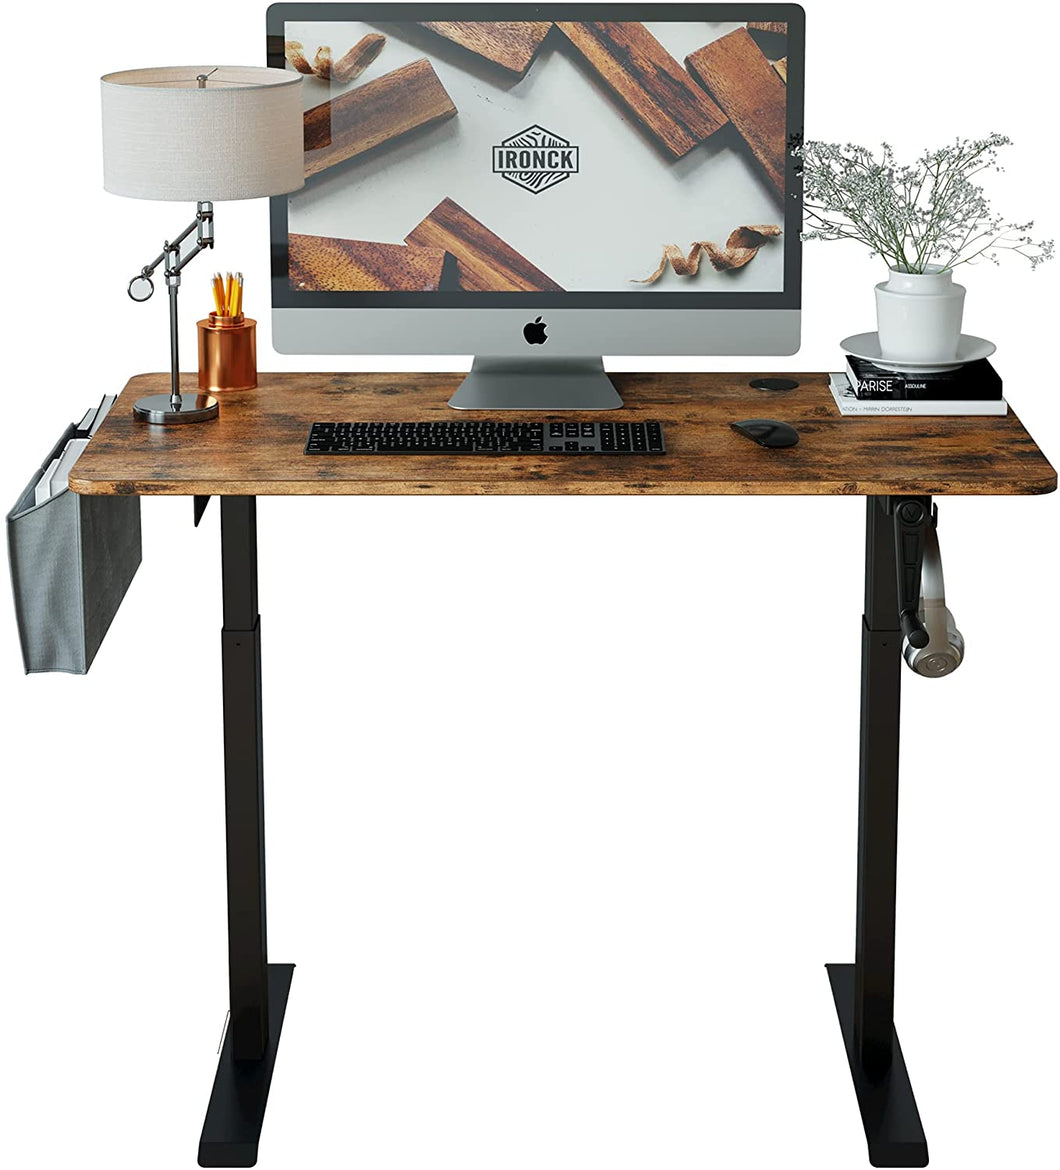 Adjustable Height Desk with Crank Handle